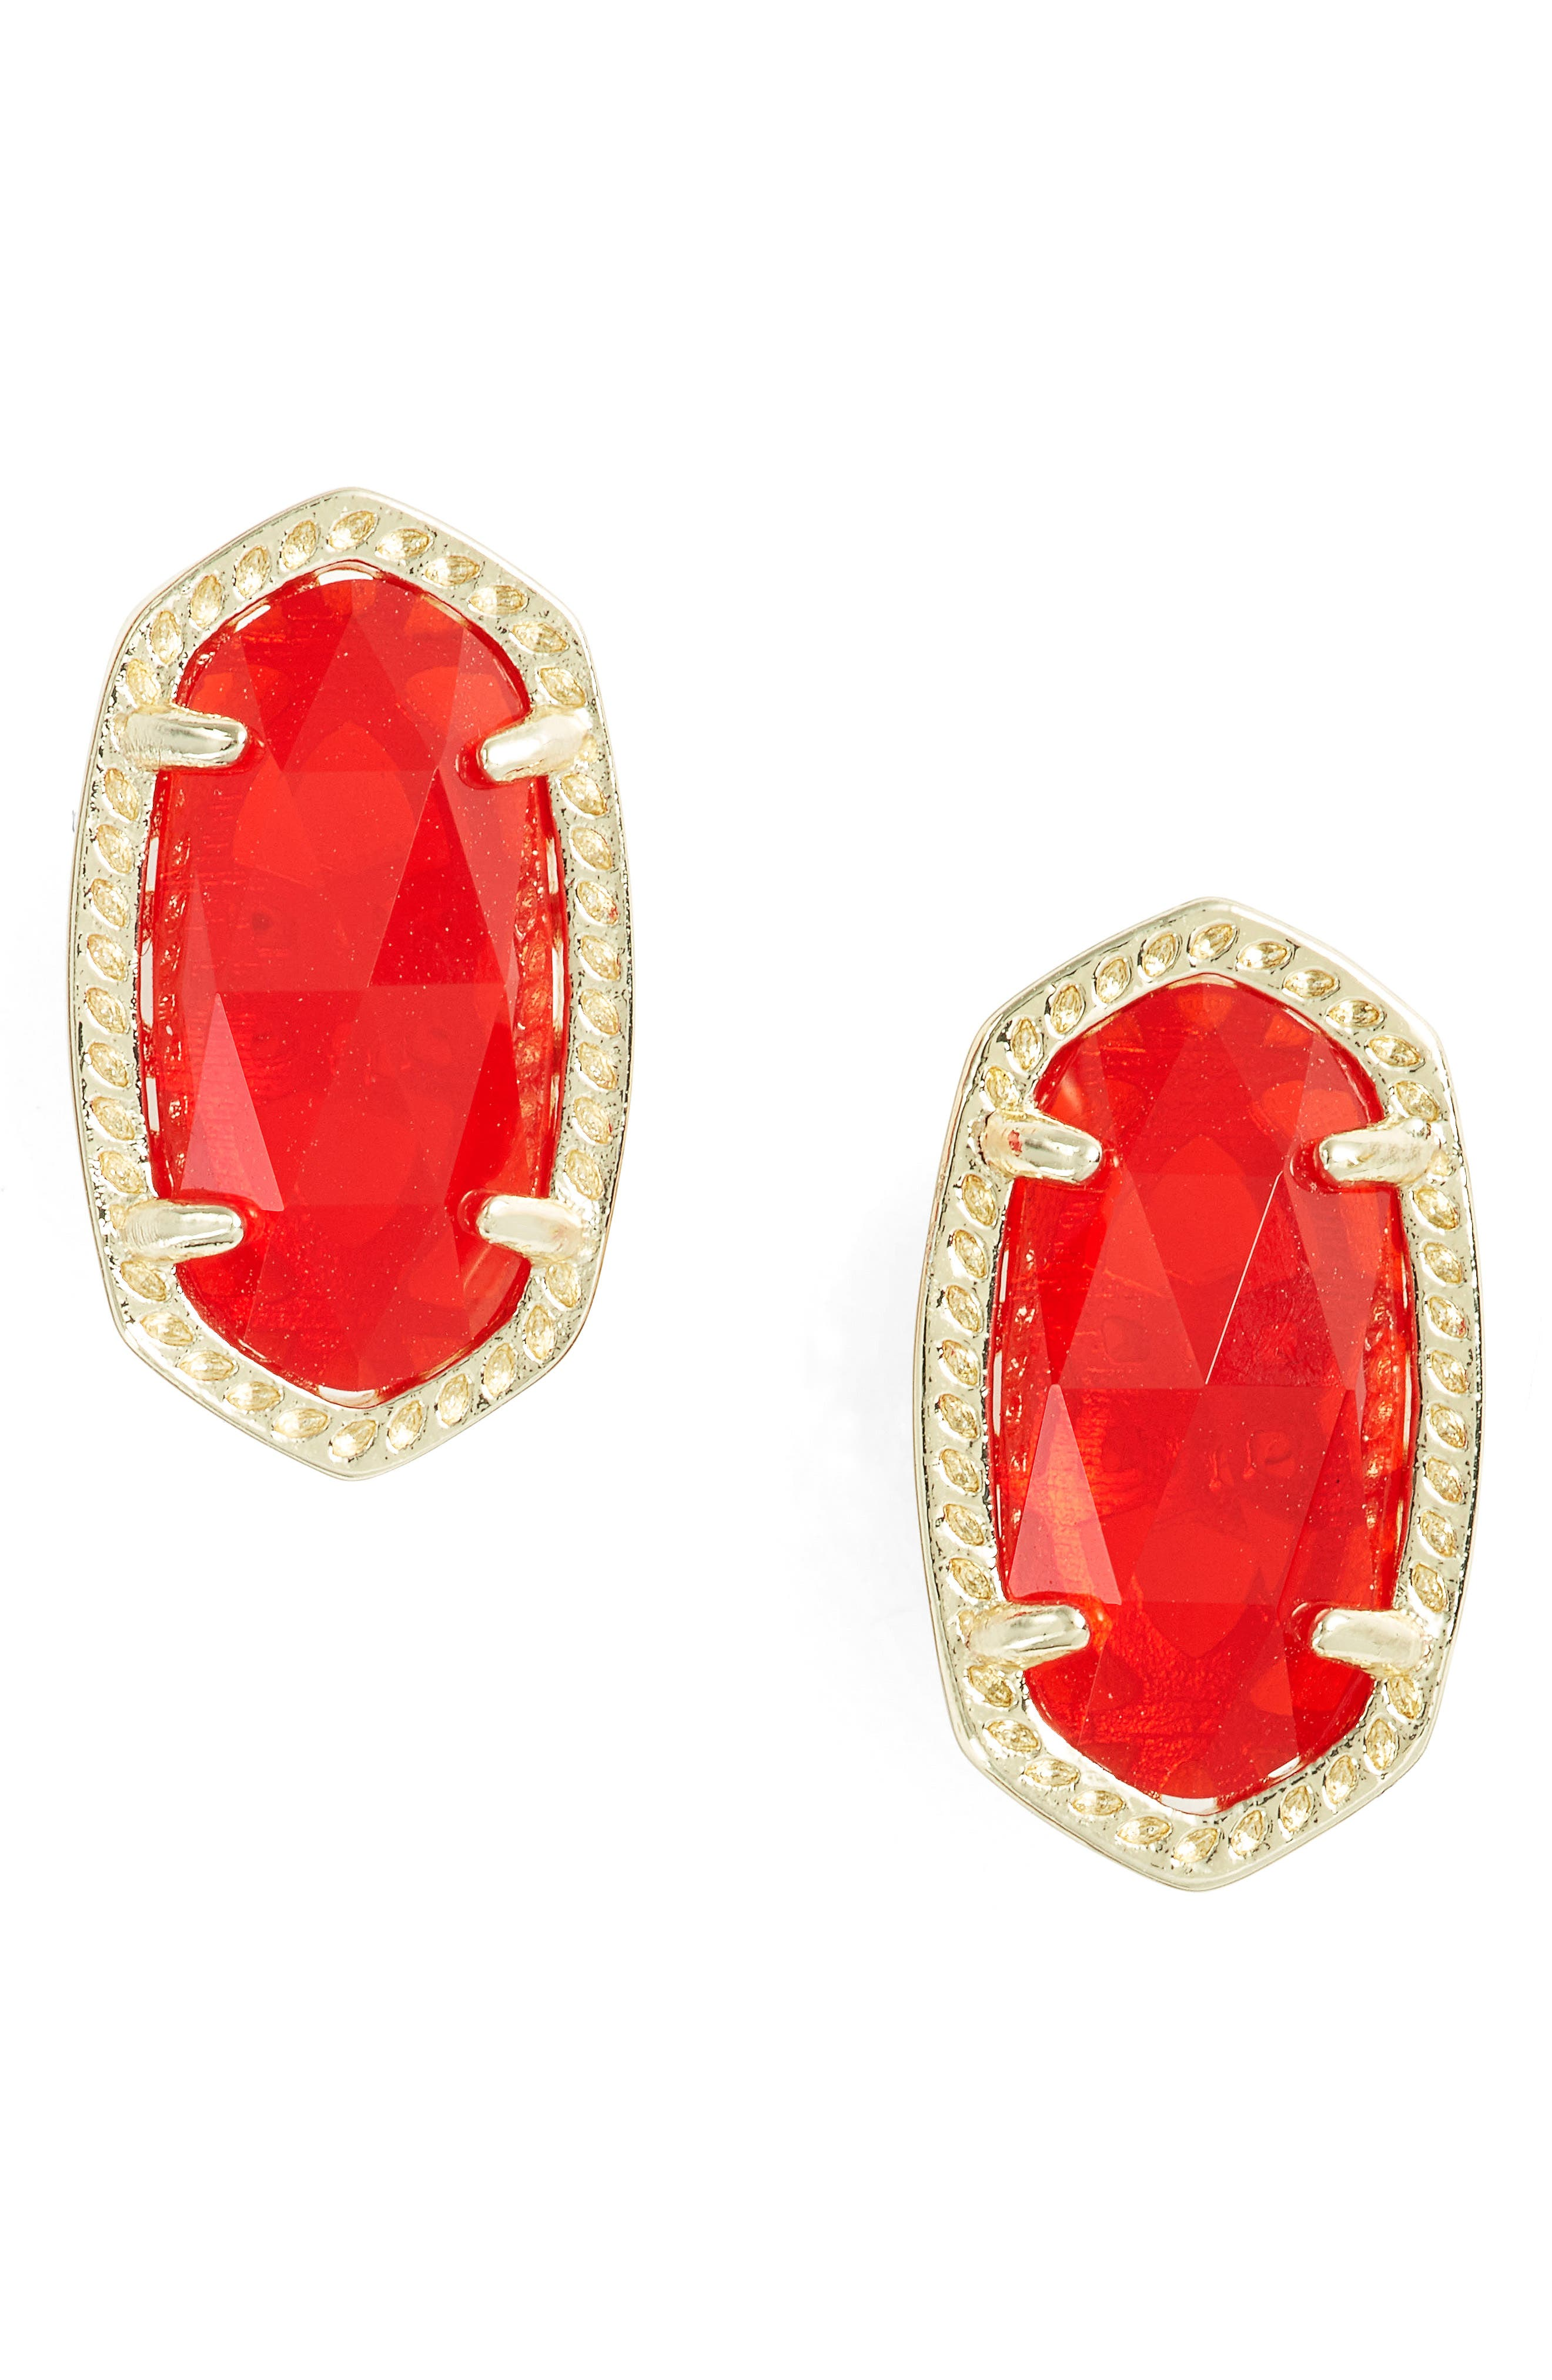 Alternate Image 1 Selected - Kendra Scott Ellie Birthstone Stud Earrings